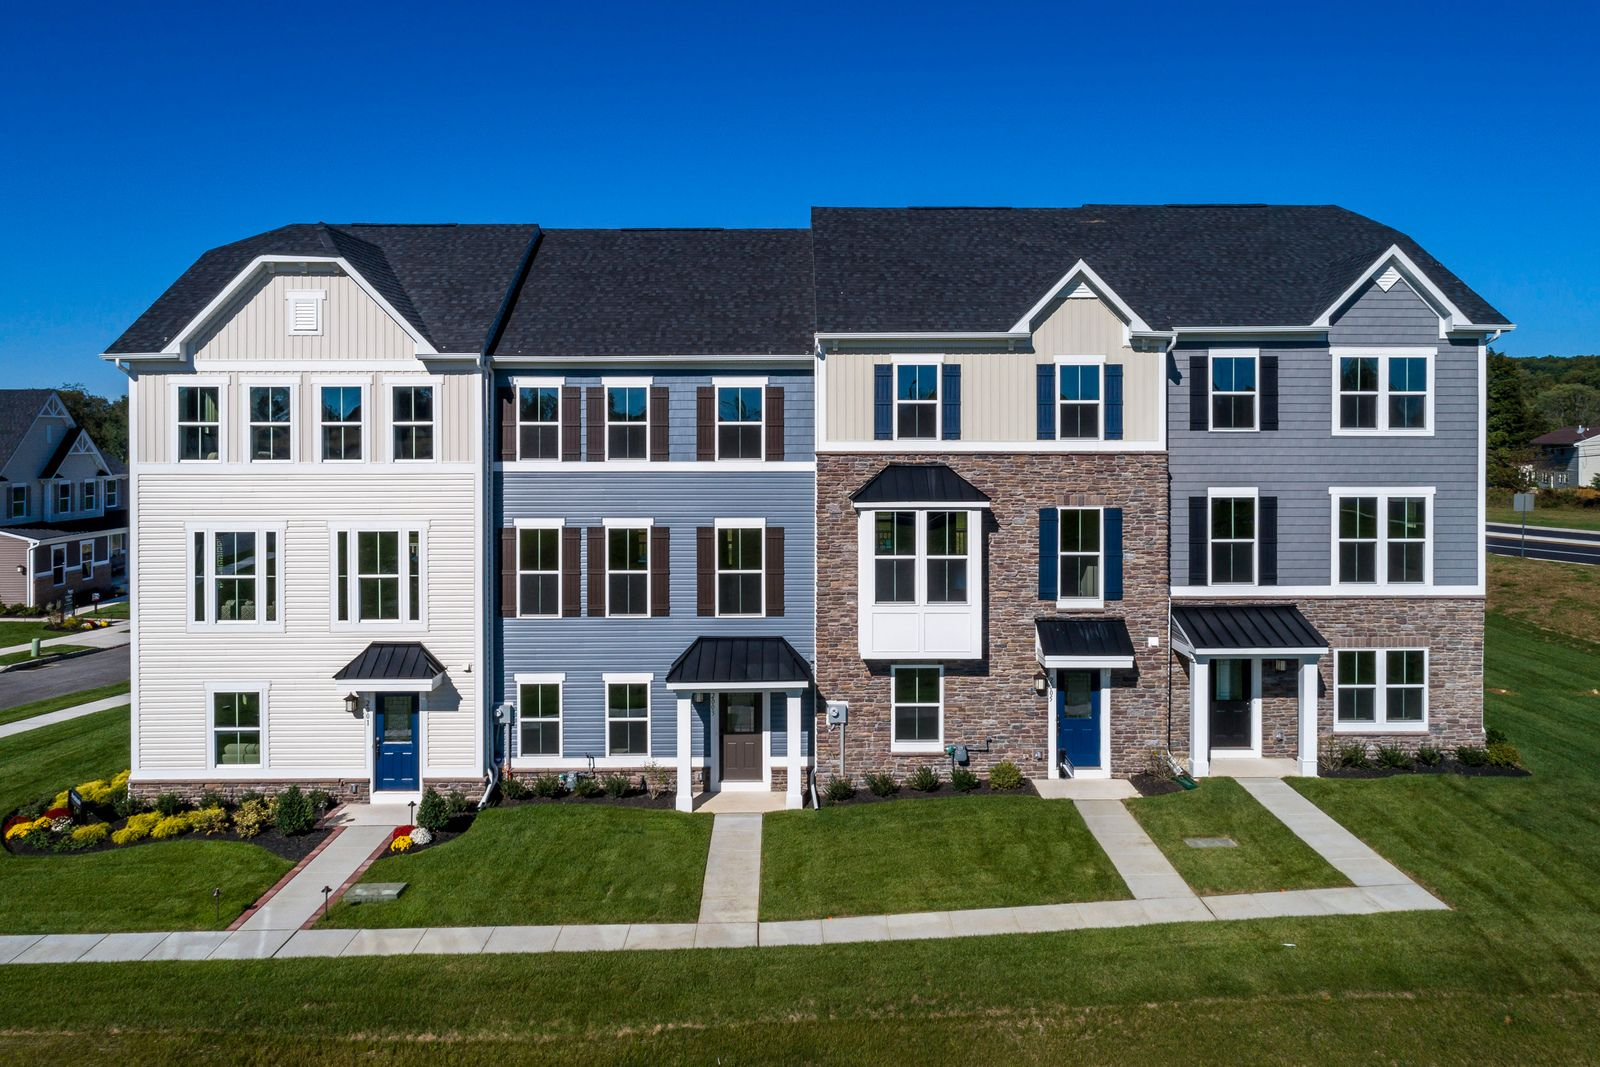 Welcome to Mapleview:The lowest priced new townhomes in Downingtown schools, from the low $300s.Click here to schedule your visit today!